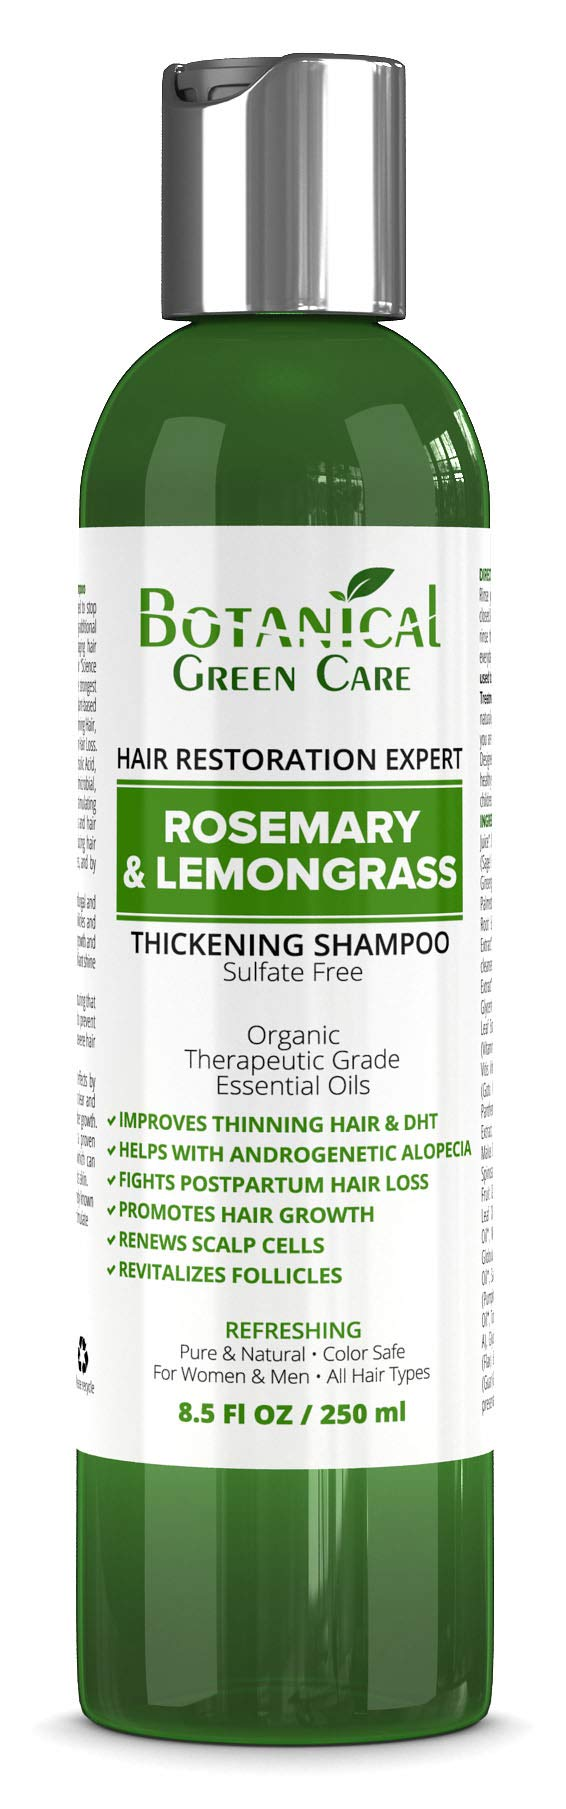 Hair Growth/Anti-Hair Loss Sulfate-Free Shampoo''Rosemary & Lemongrass''. Alopecia Prevention and DHT Blocker. Doctor Developed. NEW 2018 FORMULA! by Botanical Green Care